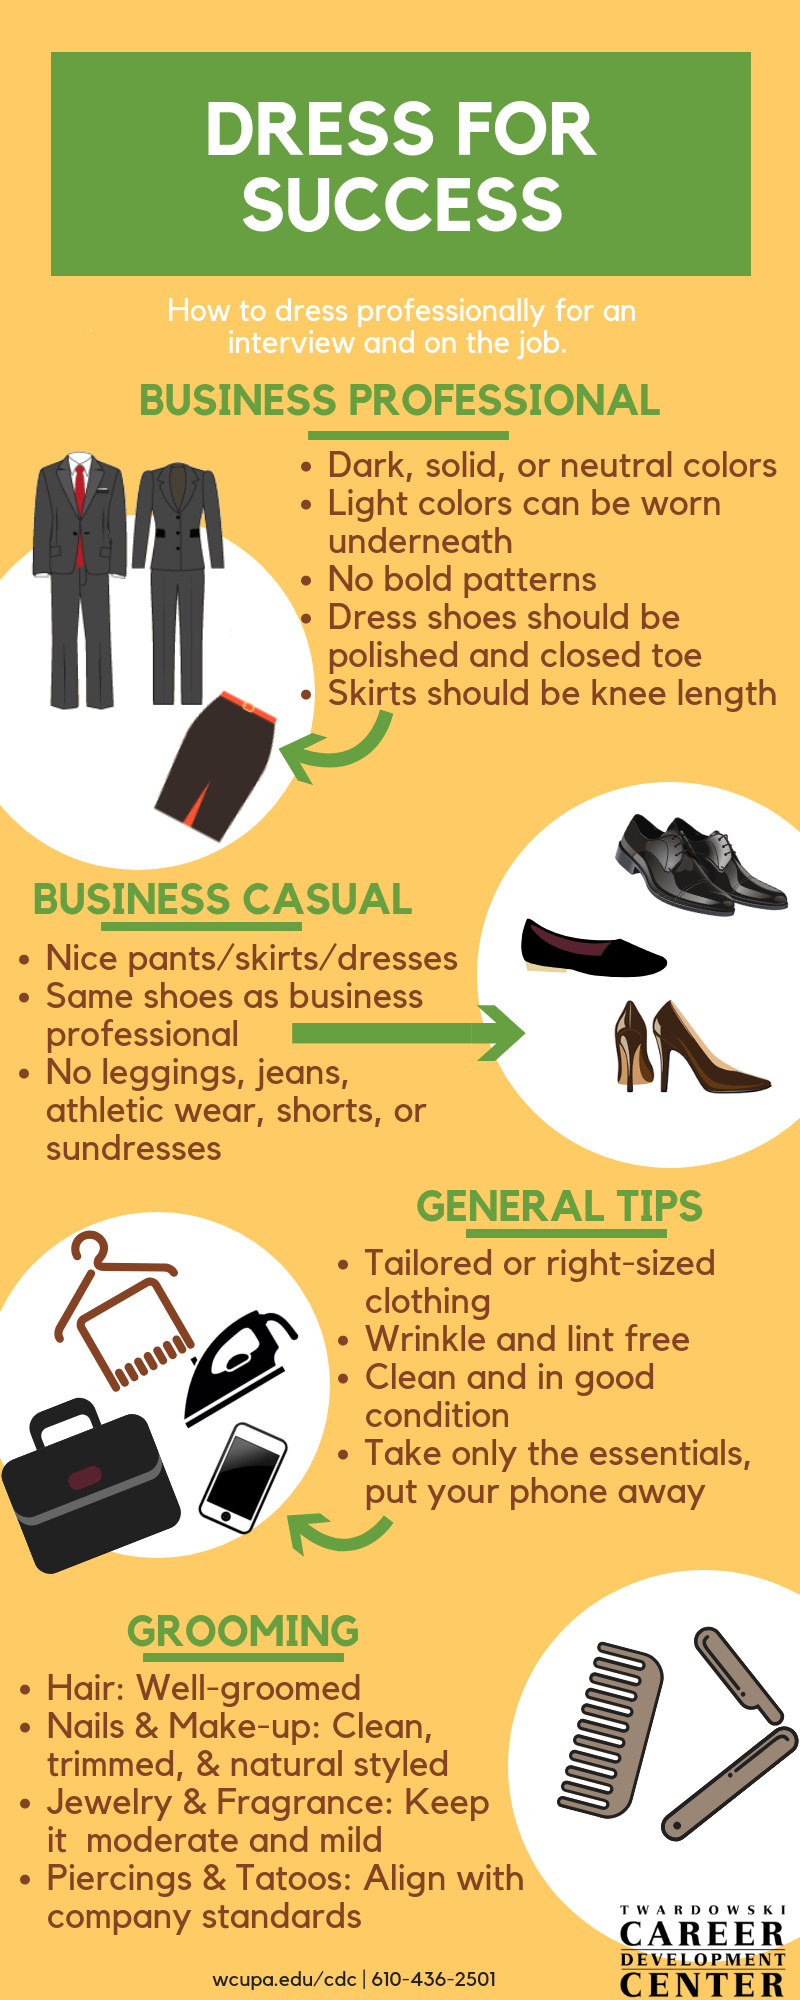 DRESS FOR SUCCESS How to dress professional for an interview and on the job. Business Professional • Dark, solid, or neutral colors • Light colors can be worn underneath • No bold patterns • Dress shoes should be polished and closed toe • Skirts should be knee length Business Casual • Nice pants/skirt/dresses • Same shoes as business professional • No leggings, jeans, athletic wear, shorts or sundresses General Tips • Tailored or right-sized clothing • Wrinkle and lint free • Clean and in good condition • Take only the essentials, put your phone away Grooming Hair: well-groomed Nails & Make-up: Clean, trimmed and natural styled Jewelry & Fragrance: Keep it moderate and mild Piercings & Tattoos: Align with company standards  TWARDOWSKI CAREER DEVELOPMENT CENTER wcupa.edu/cdc |610-436-2501